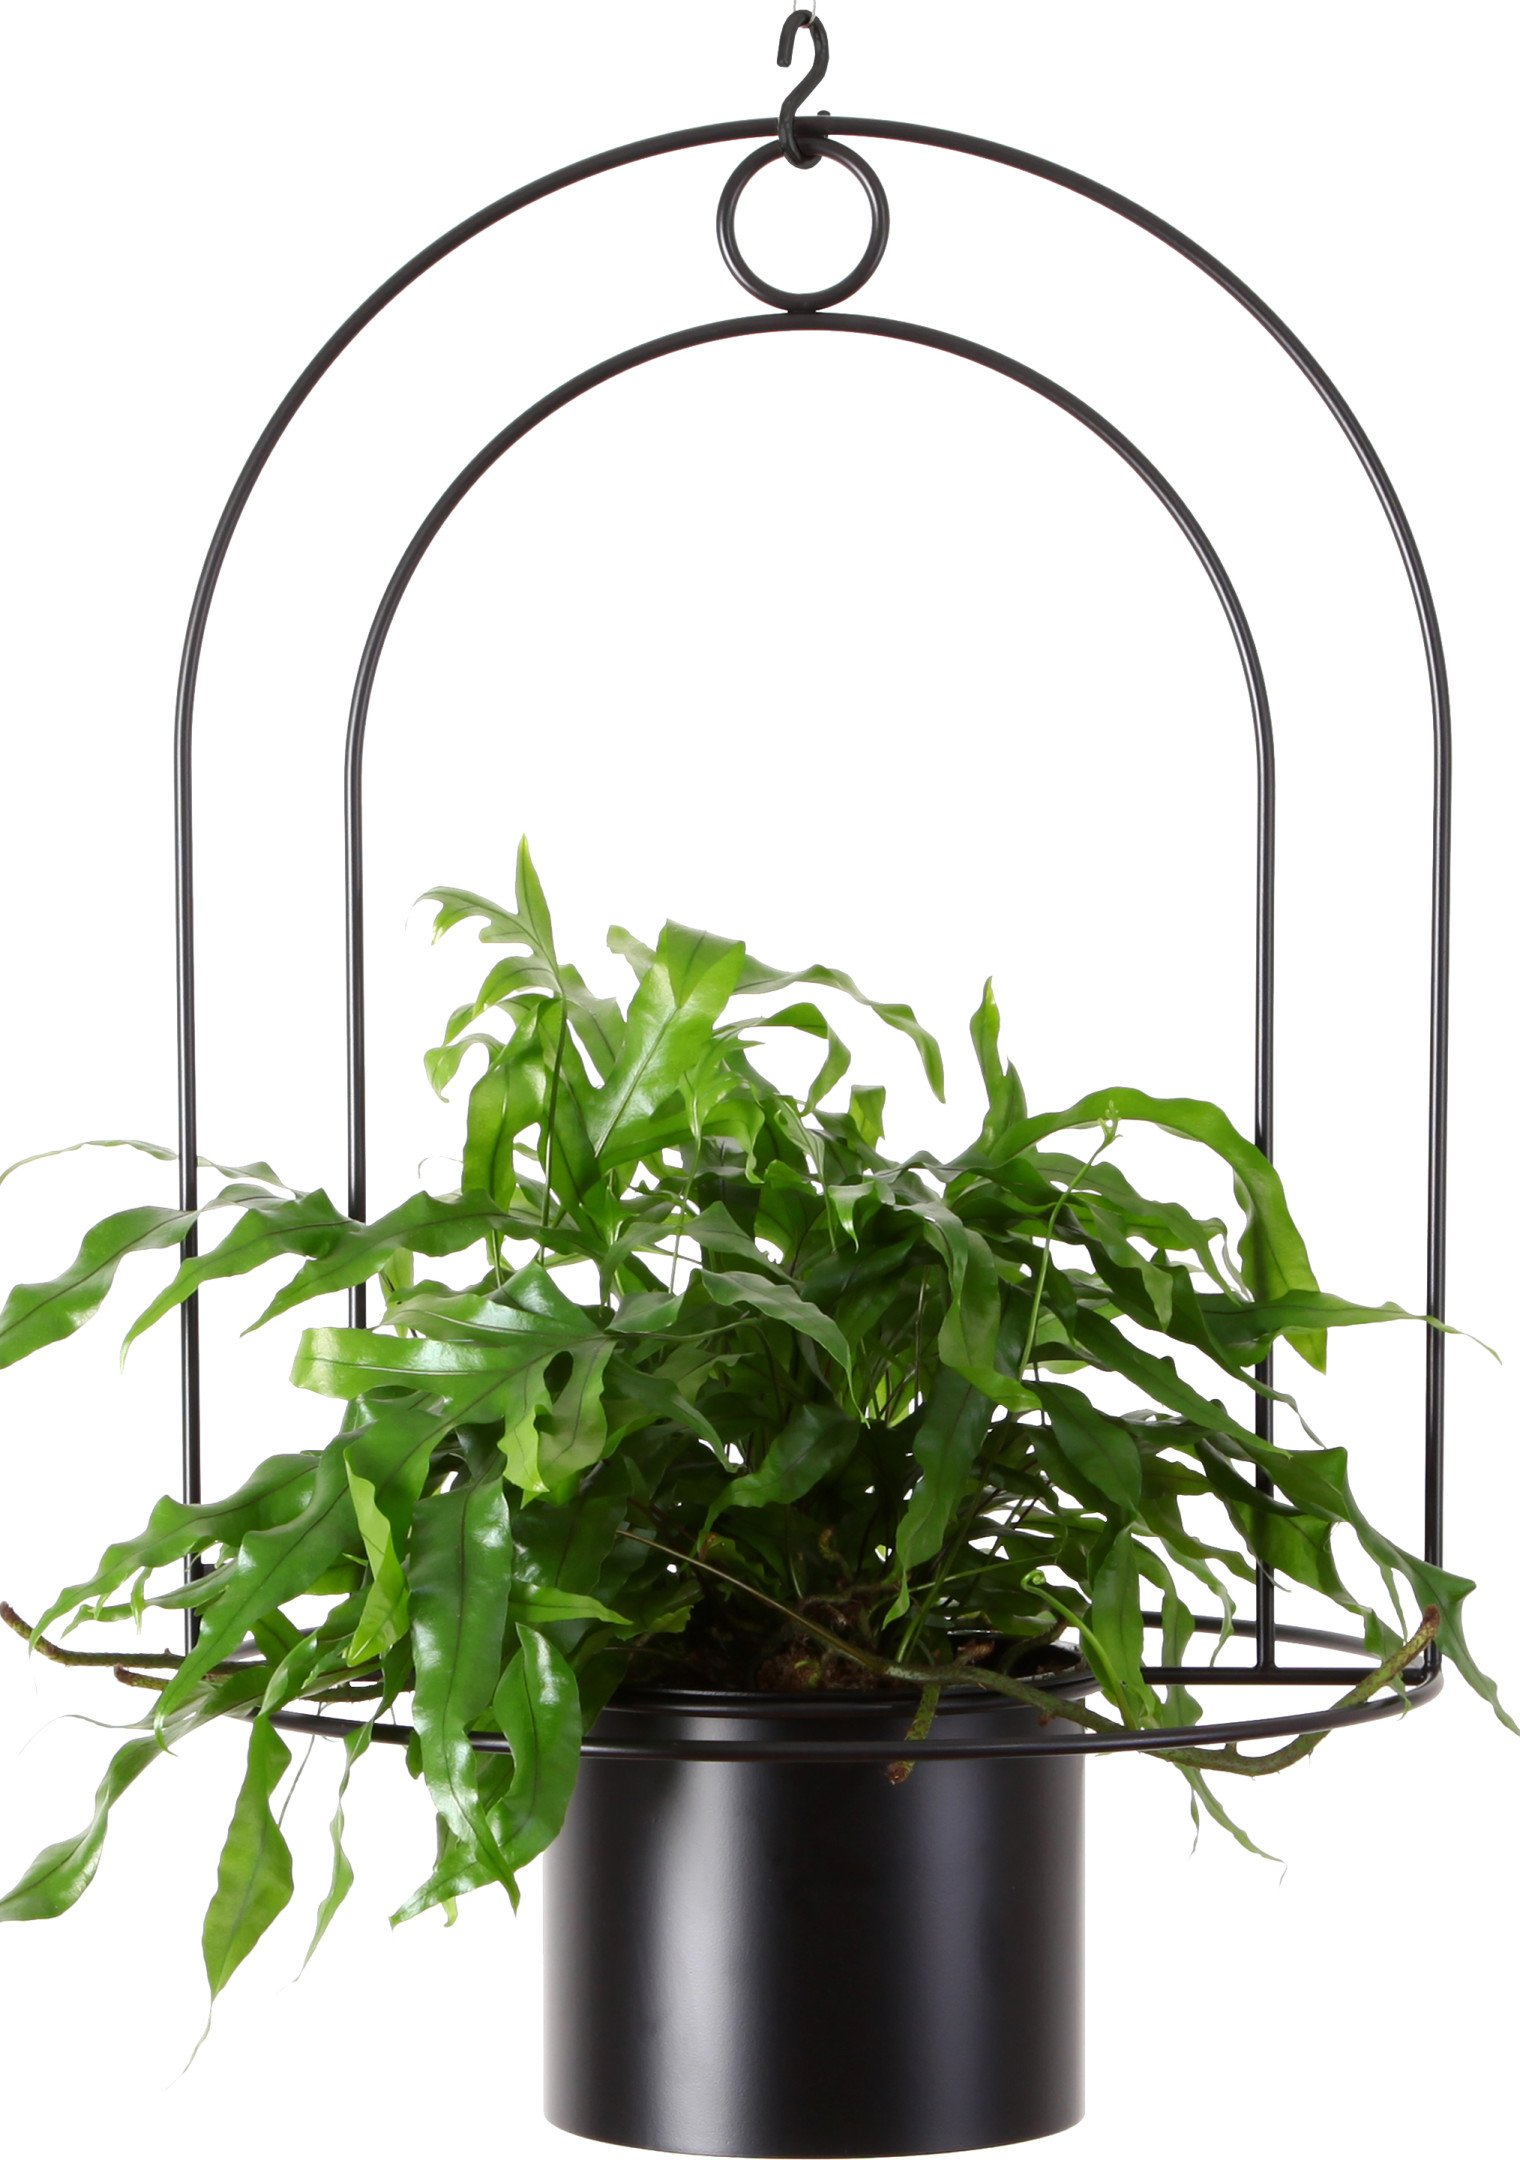 Dou Ceiling Plant Hanger With a Pot Black, Bujnie